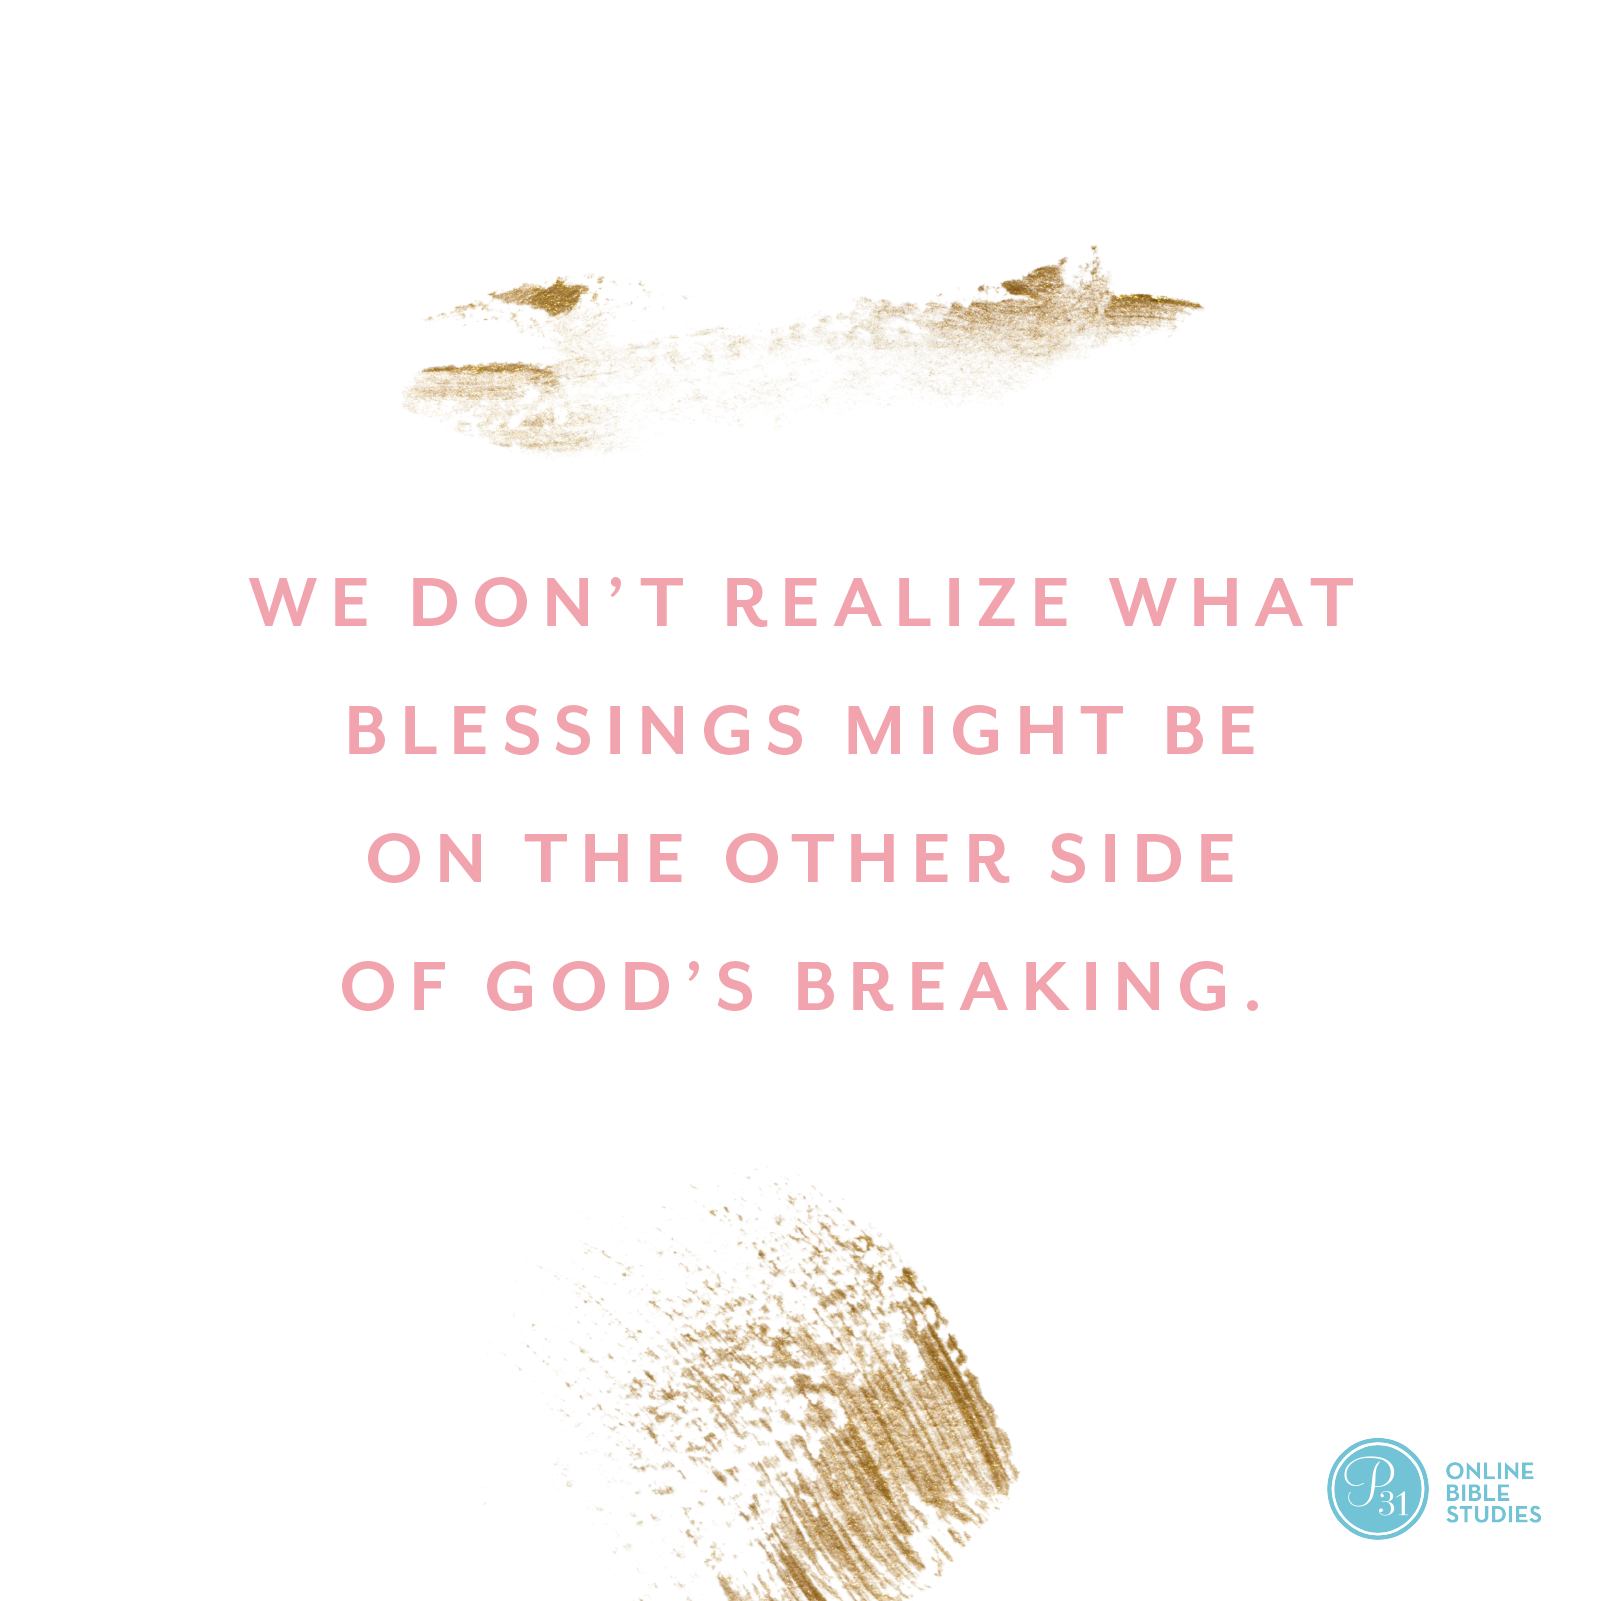 """We don't realize what blessings might be on the other side of God's breaking."" - Craig Groeschel  #DangerousPrayers 